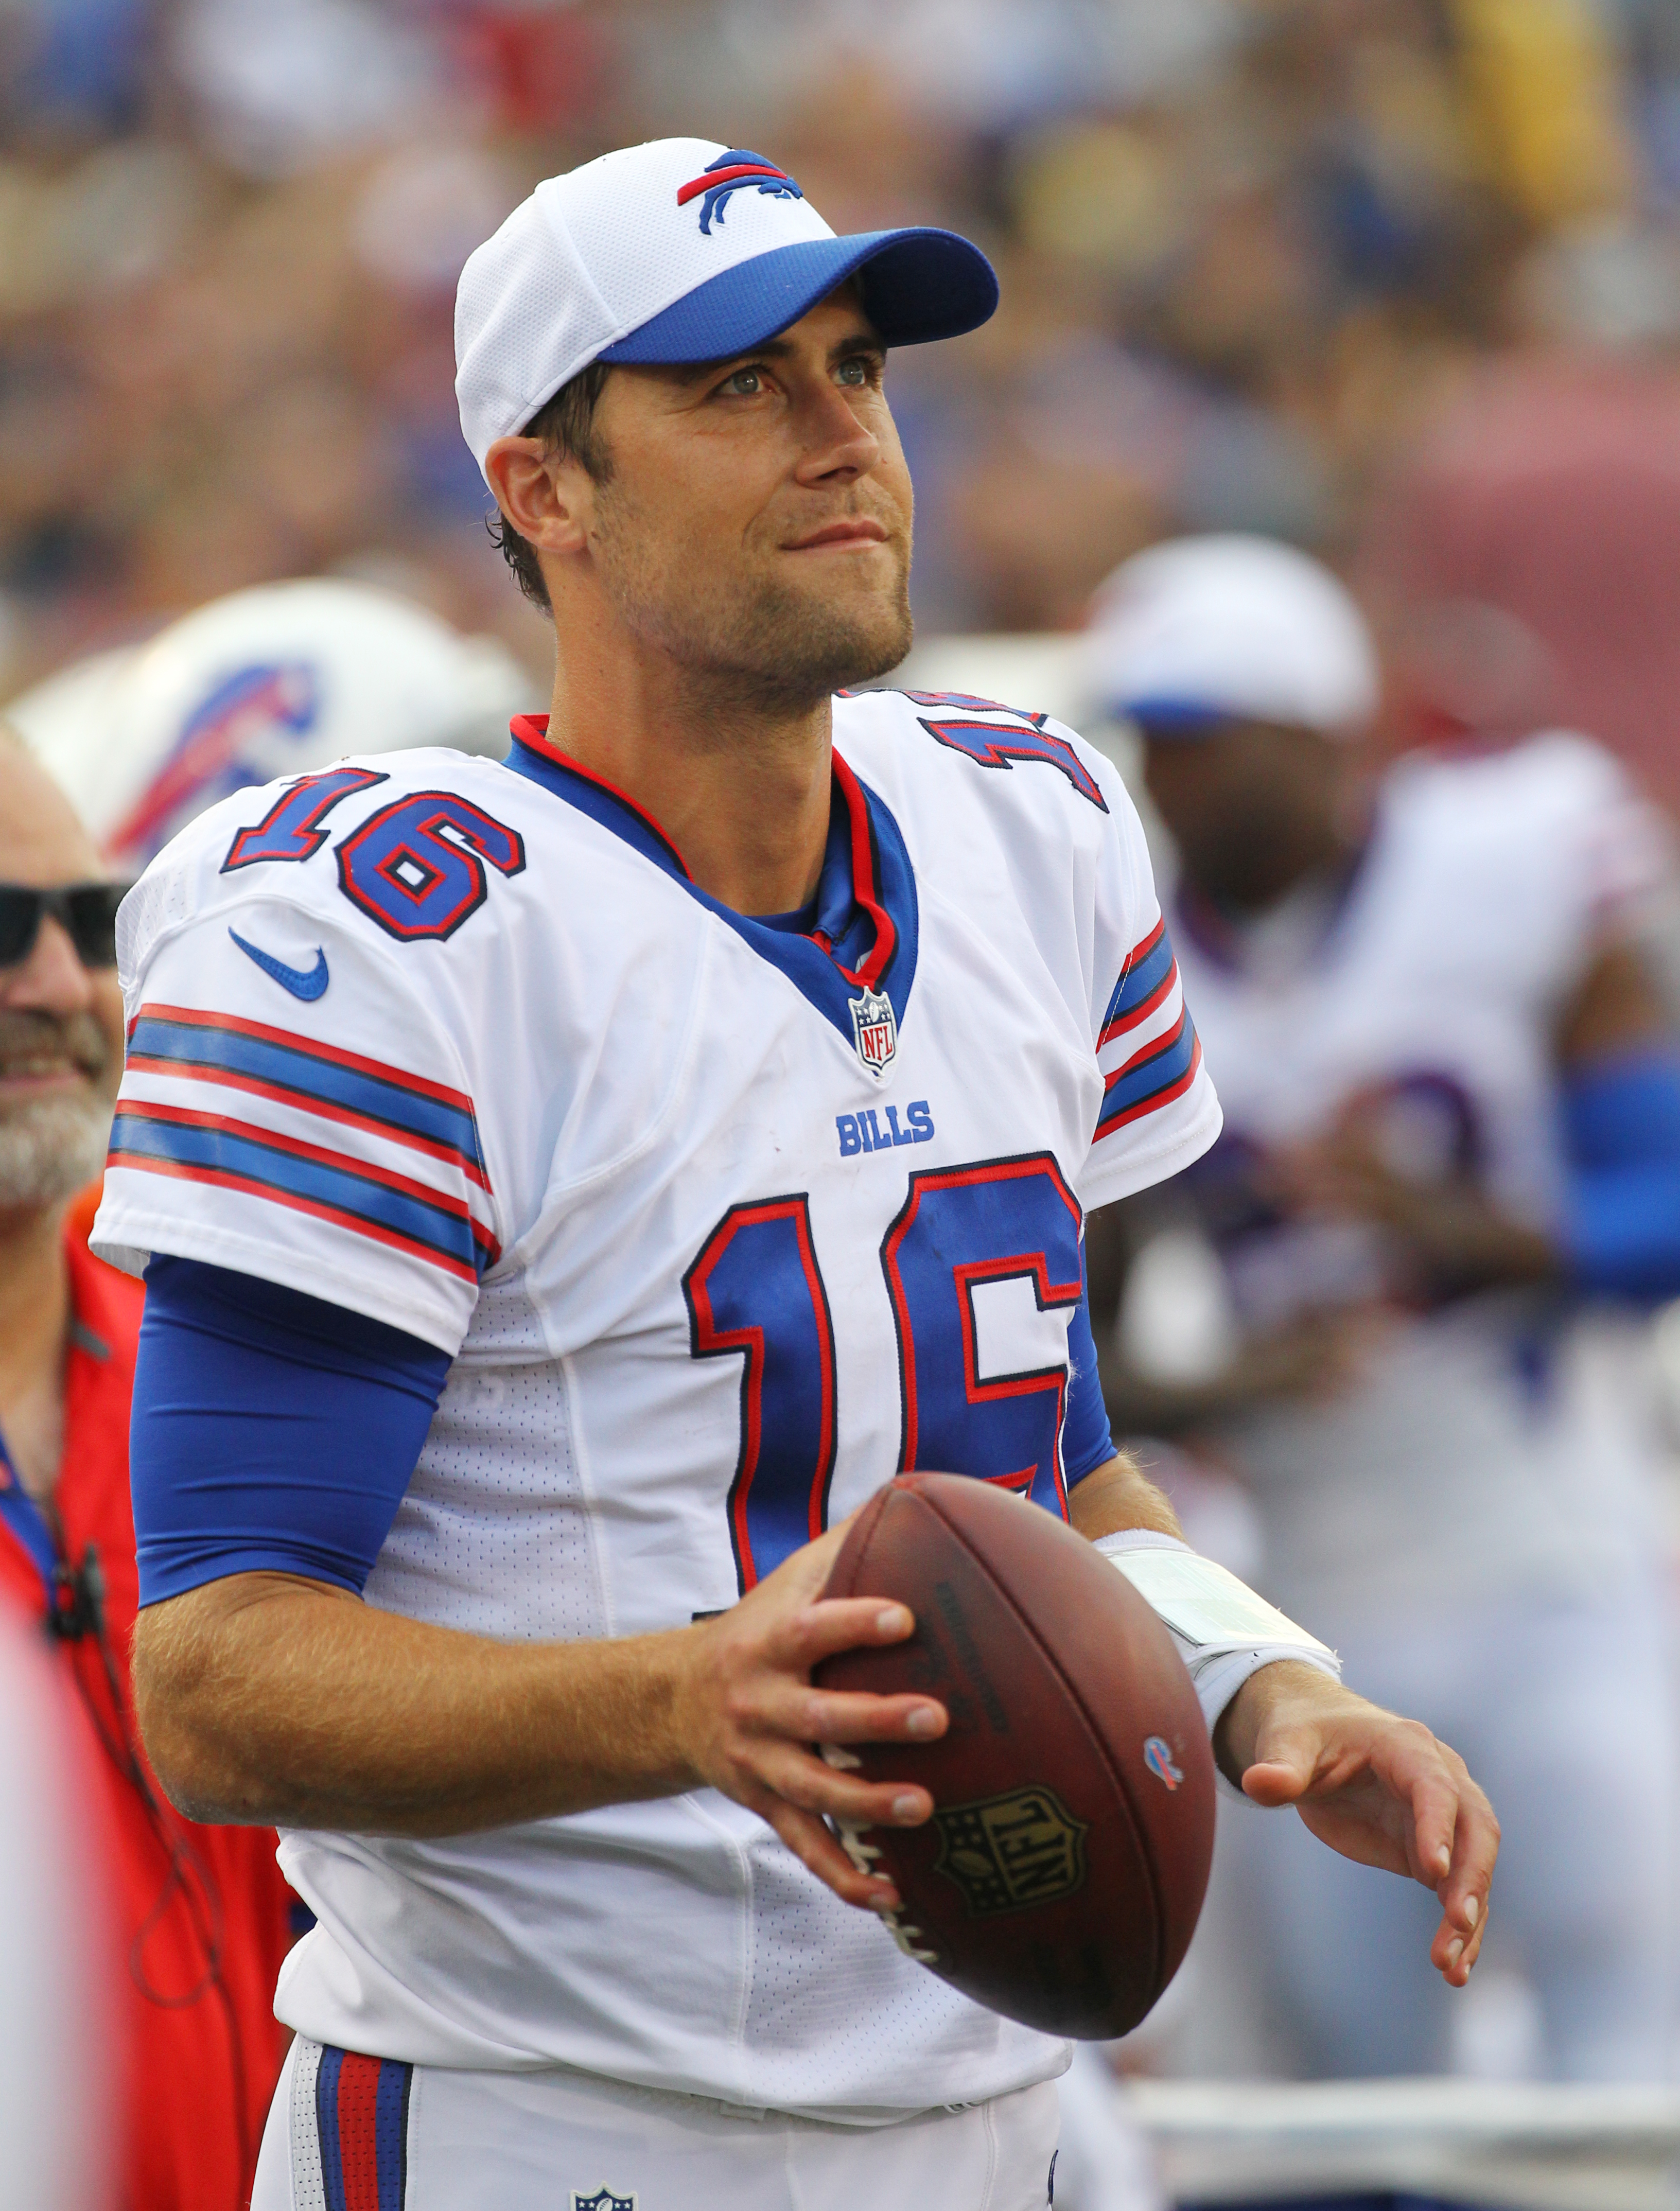 Buffalo Bills quarterback Matt Cassell watches from the sidelines during the second half of a preseason NFL football game against the Pittsburgh Steelers on Saturday, Aug. 29, 2015, in Orchard Park, N.Y. (AP Photo/Bill Wippert)